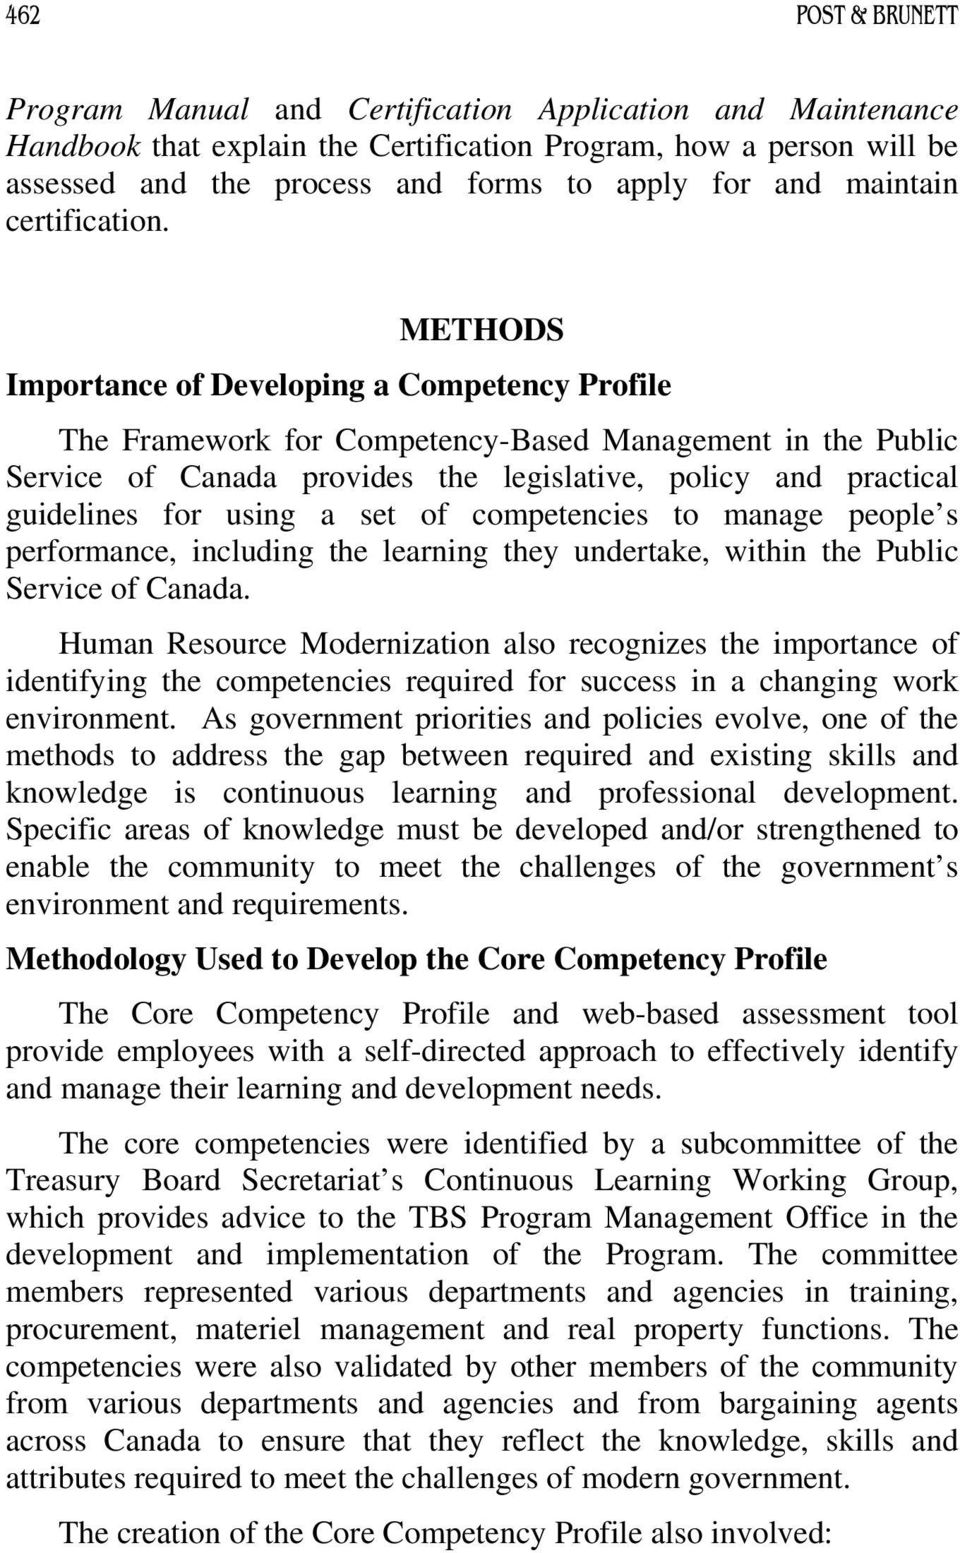 METHODS Importance of Developing a Competency Profile The Framework for Competency-Based Management in the Public Service of Canada provides the legislative, policy and practical guidelines for using